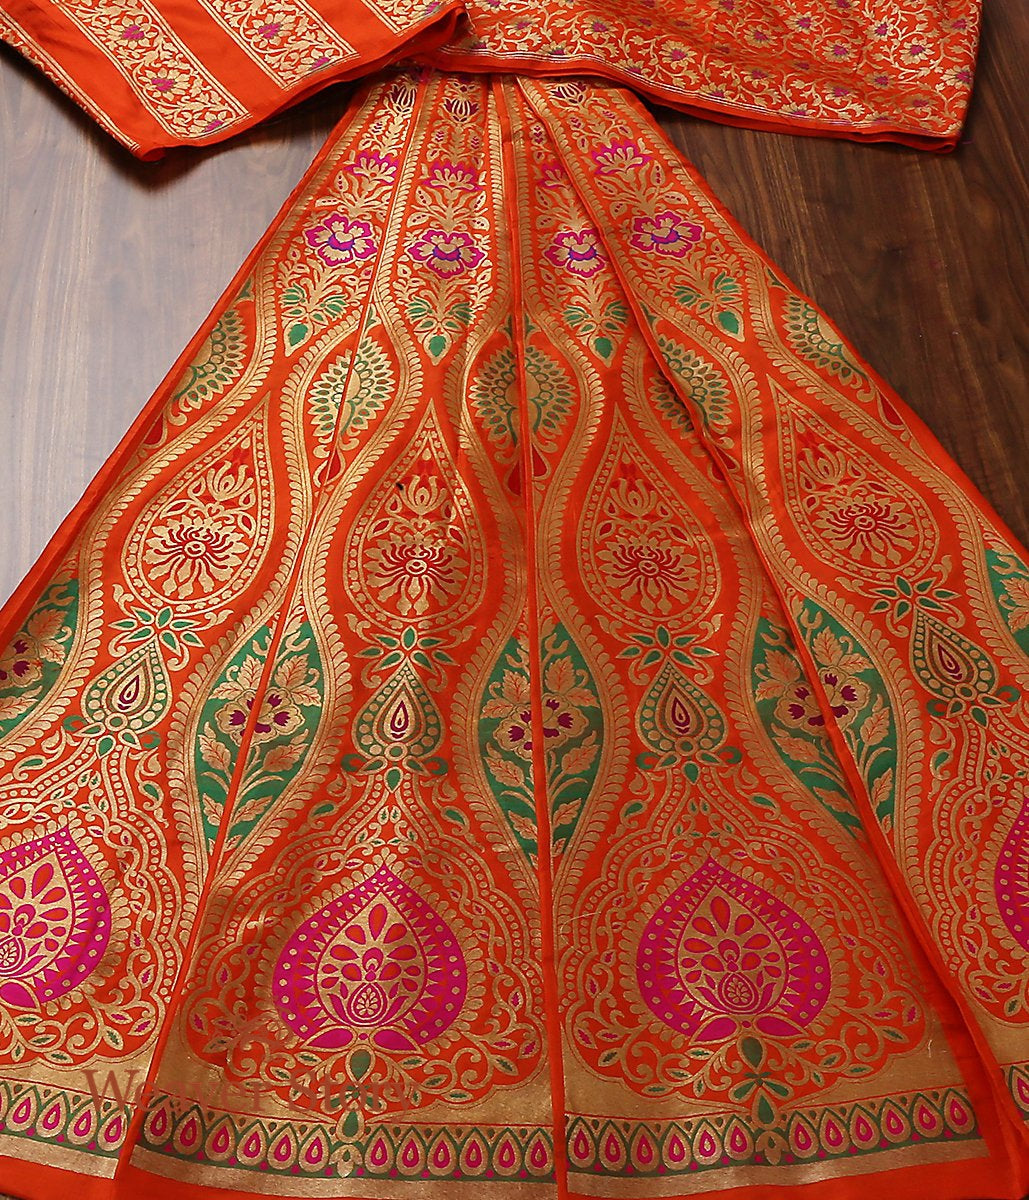 Handwoven Orange Banarasi Kalidar Lehenga with Meenakari